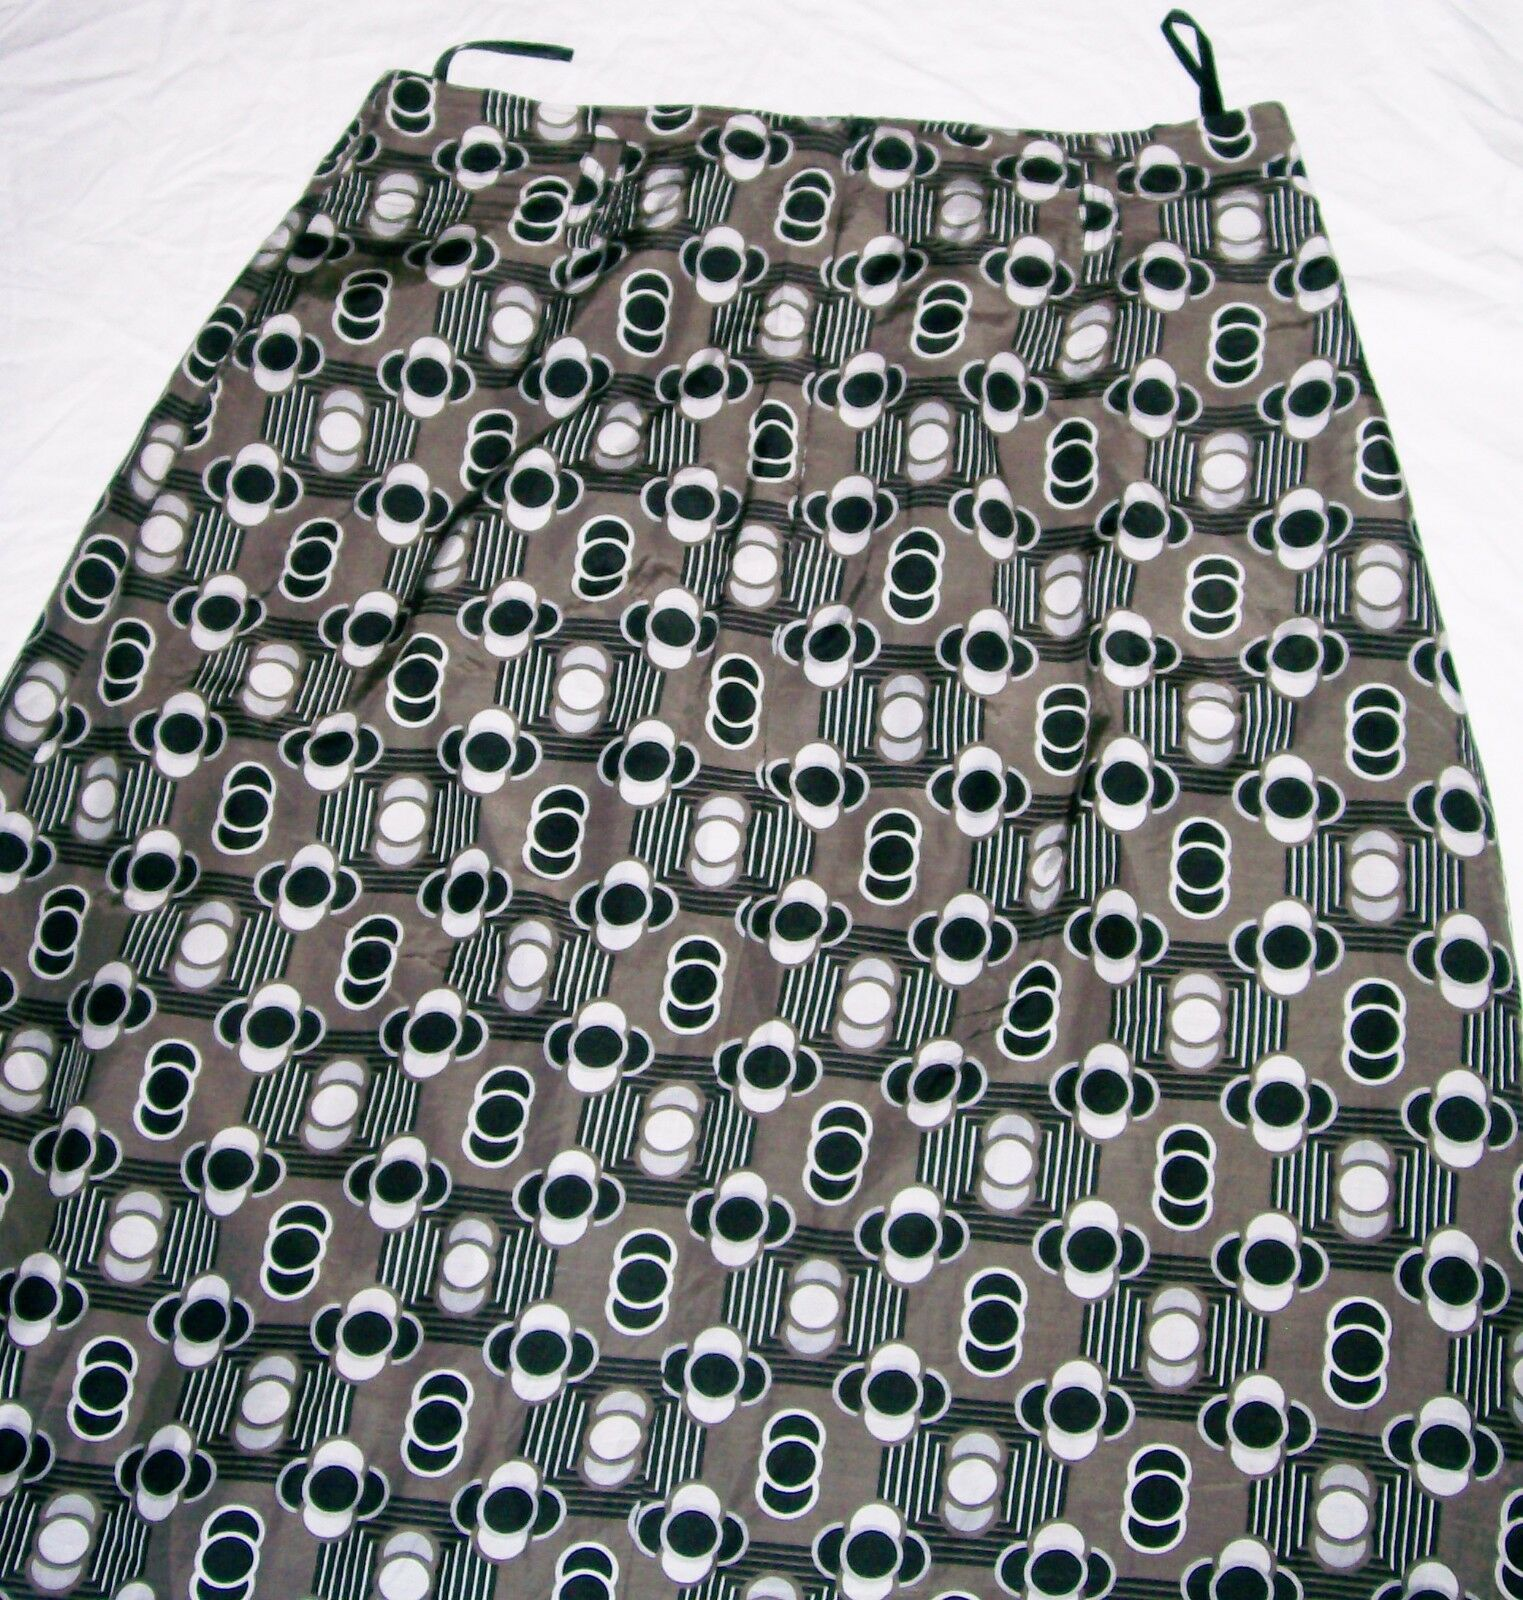 Hirsch Geometric Skirt brown taupe cotton blend lined knee length Size 16 New